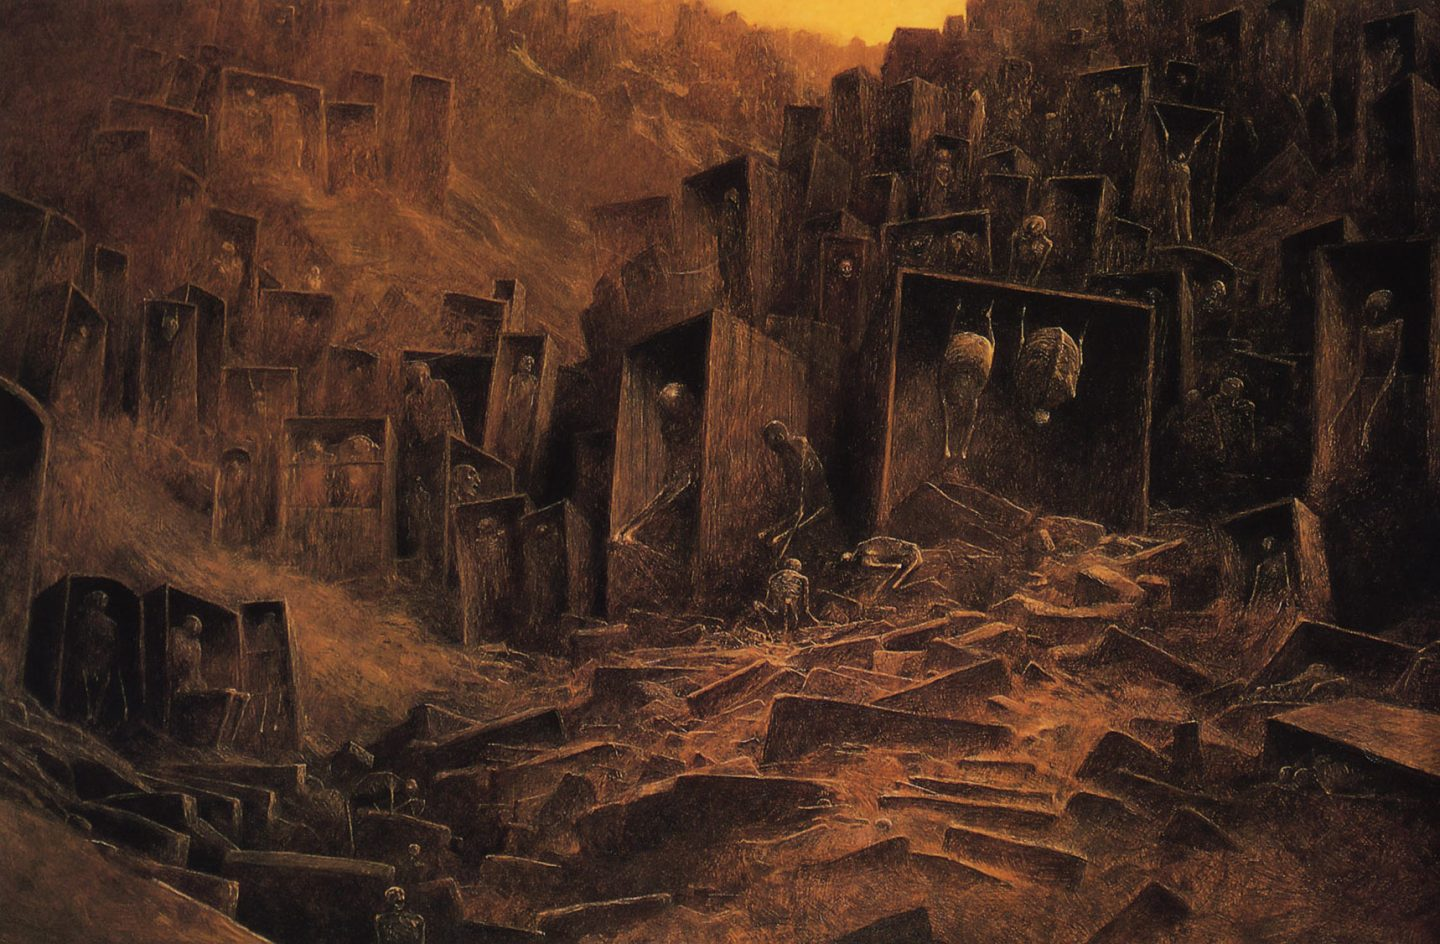 Paintings by Polish artist Zdzisław Beksiński, like the one above, were major influences on the production of the Dawn of War III trailer.